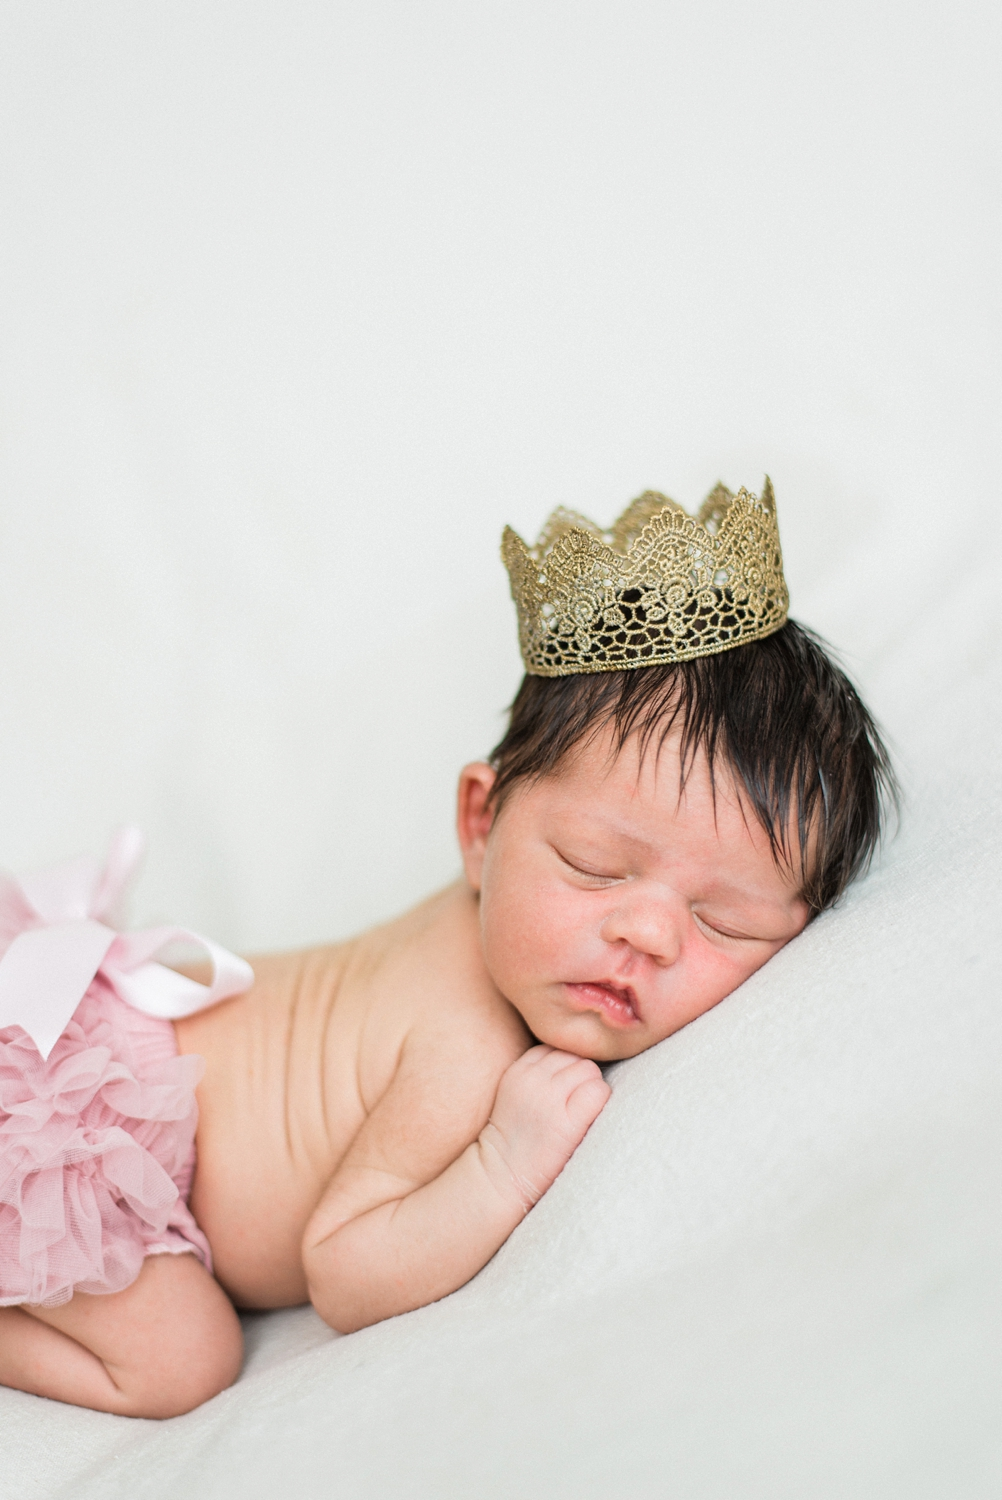 portland-newborn-photographer-baby-girl-crown-shelley-marie-photo-14